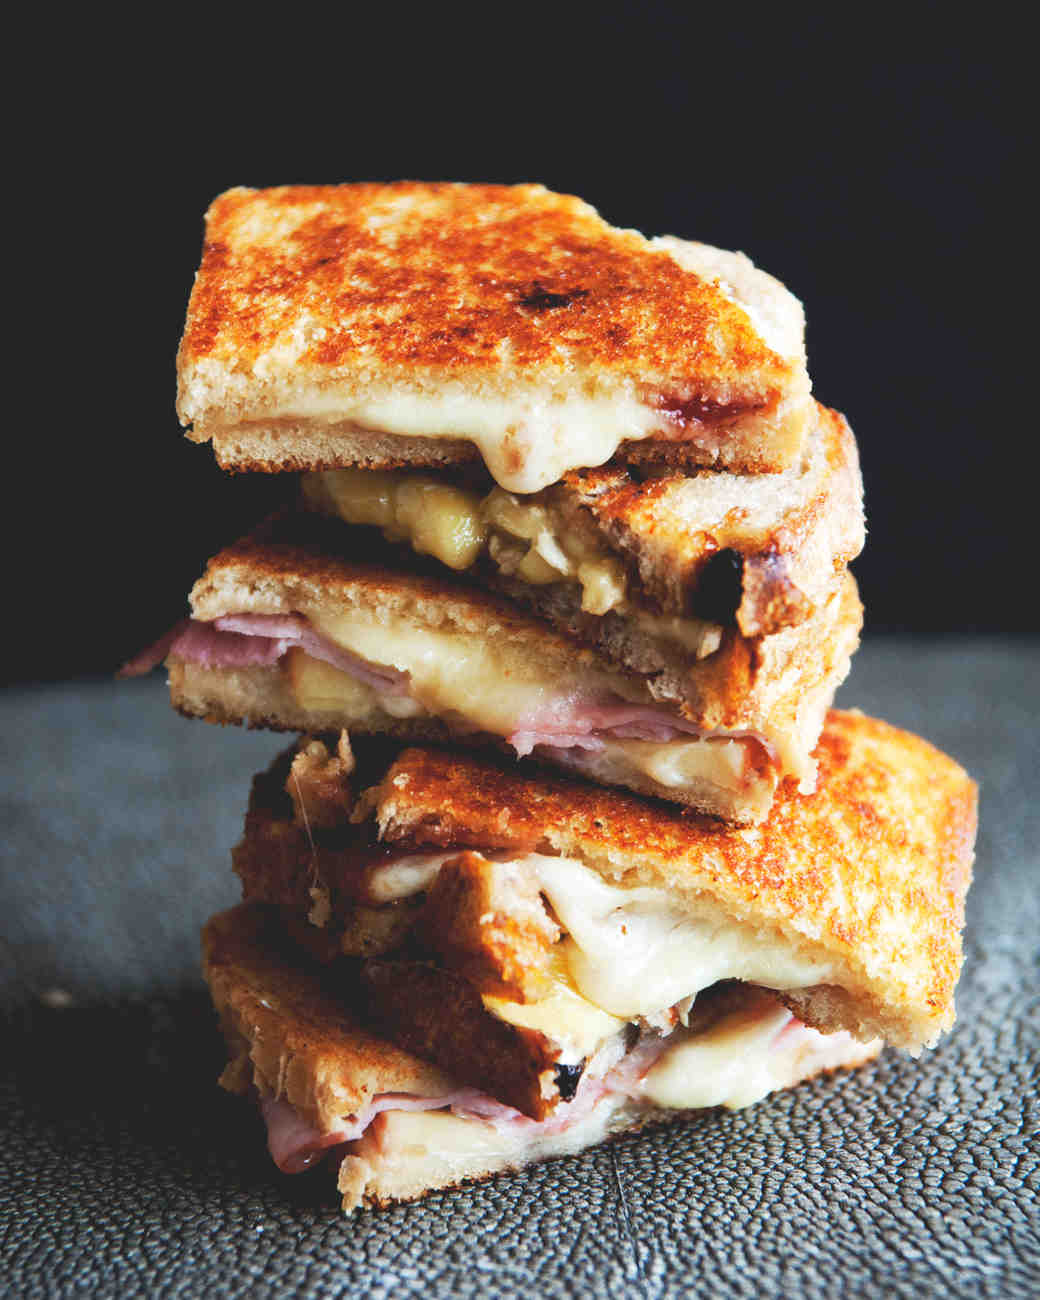 claire-thomas-valentines-day-lunch-grilled-cheese-0215.jpg